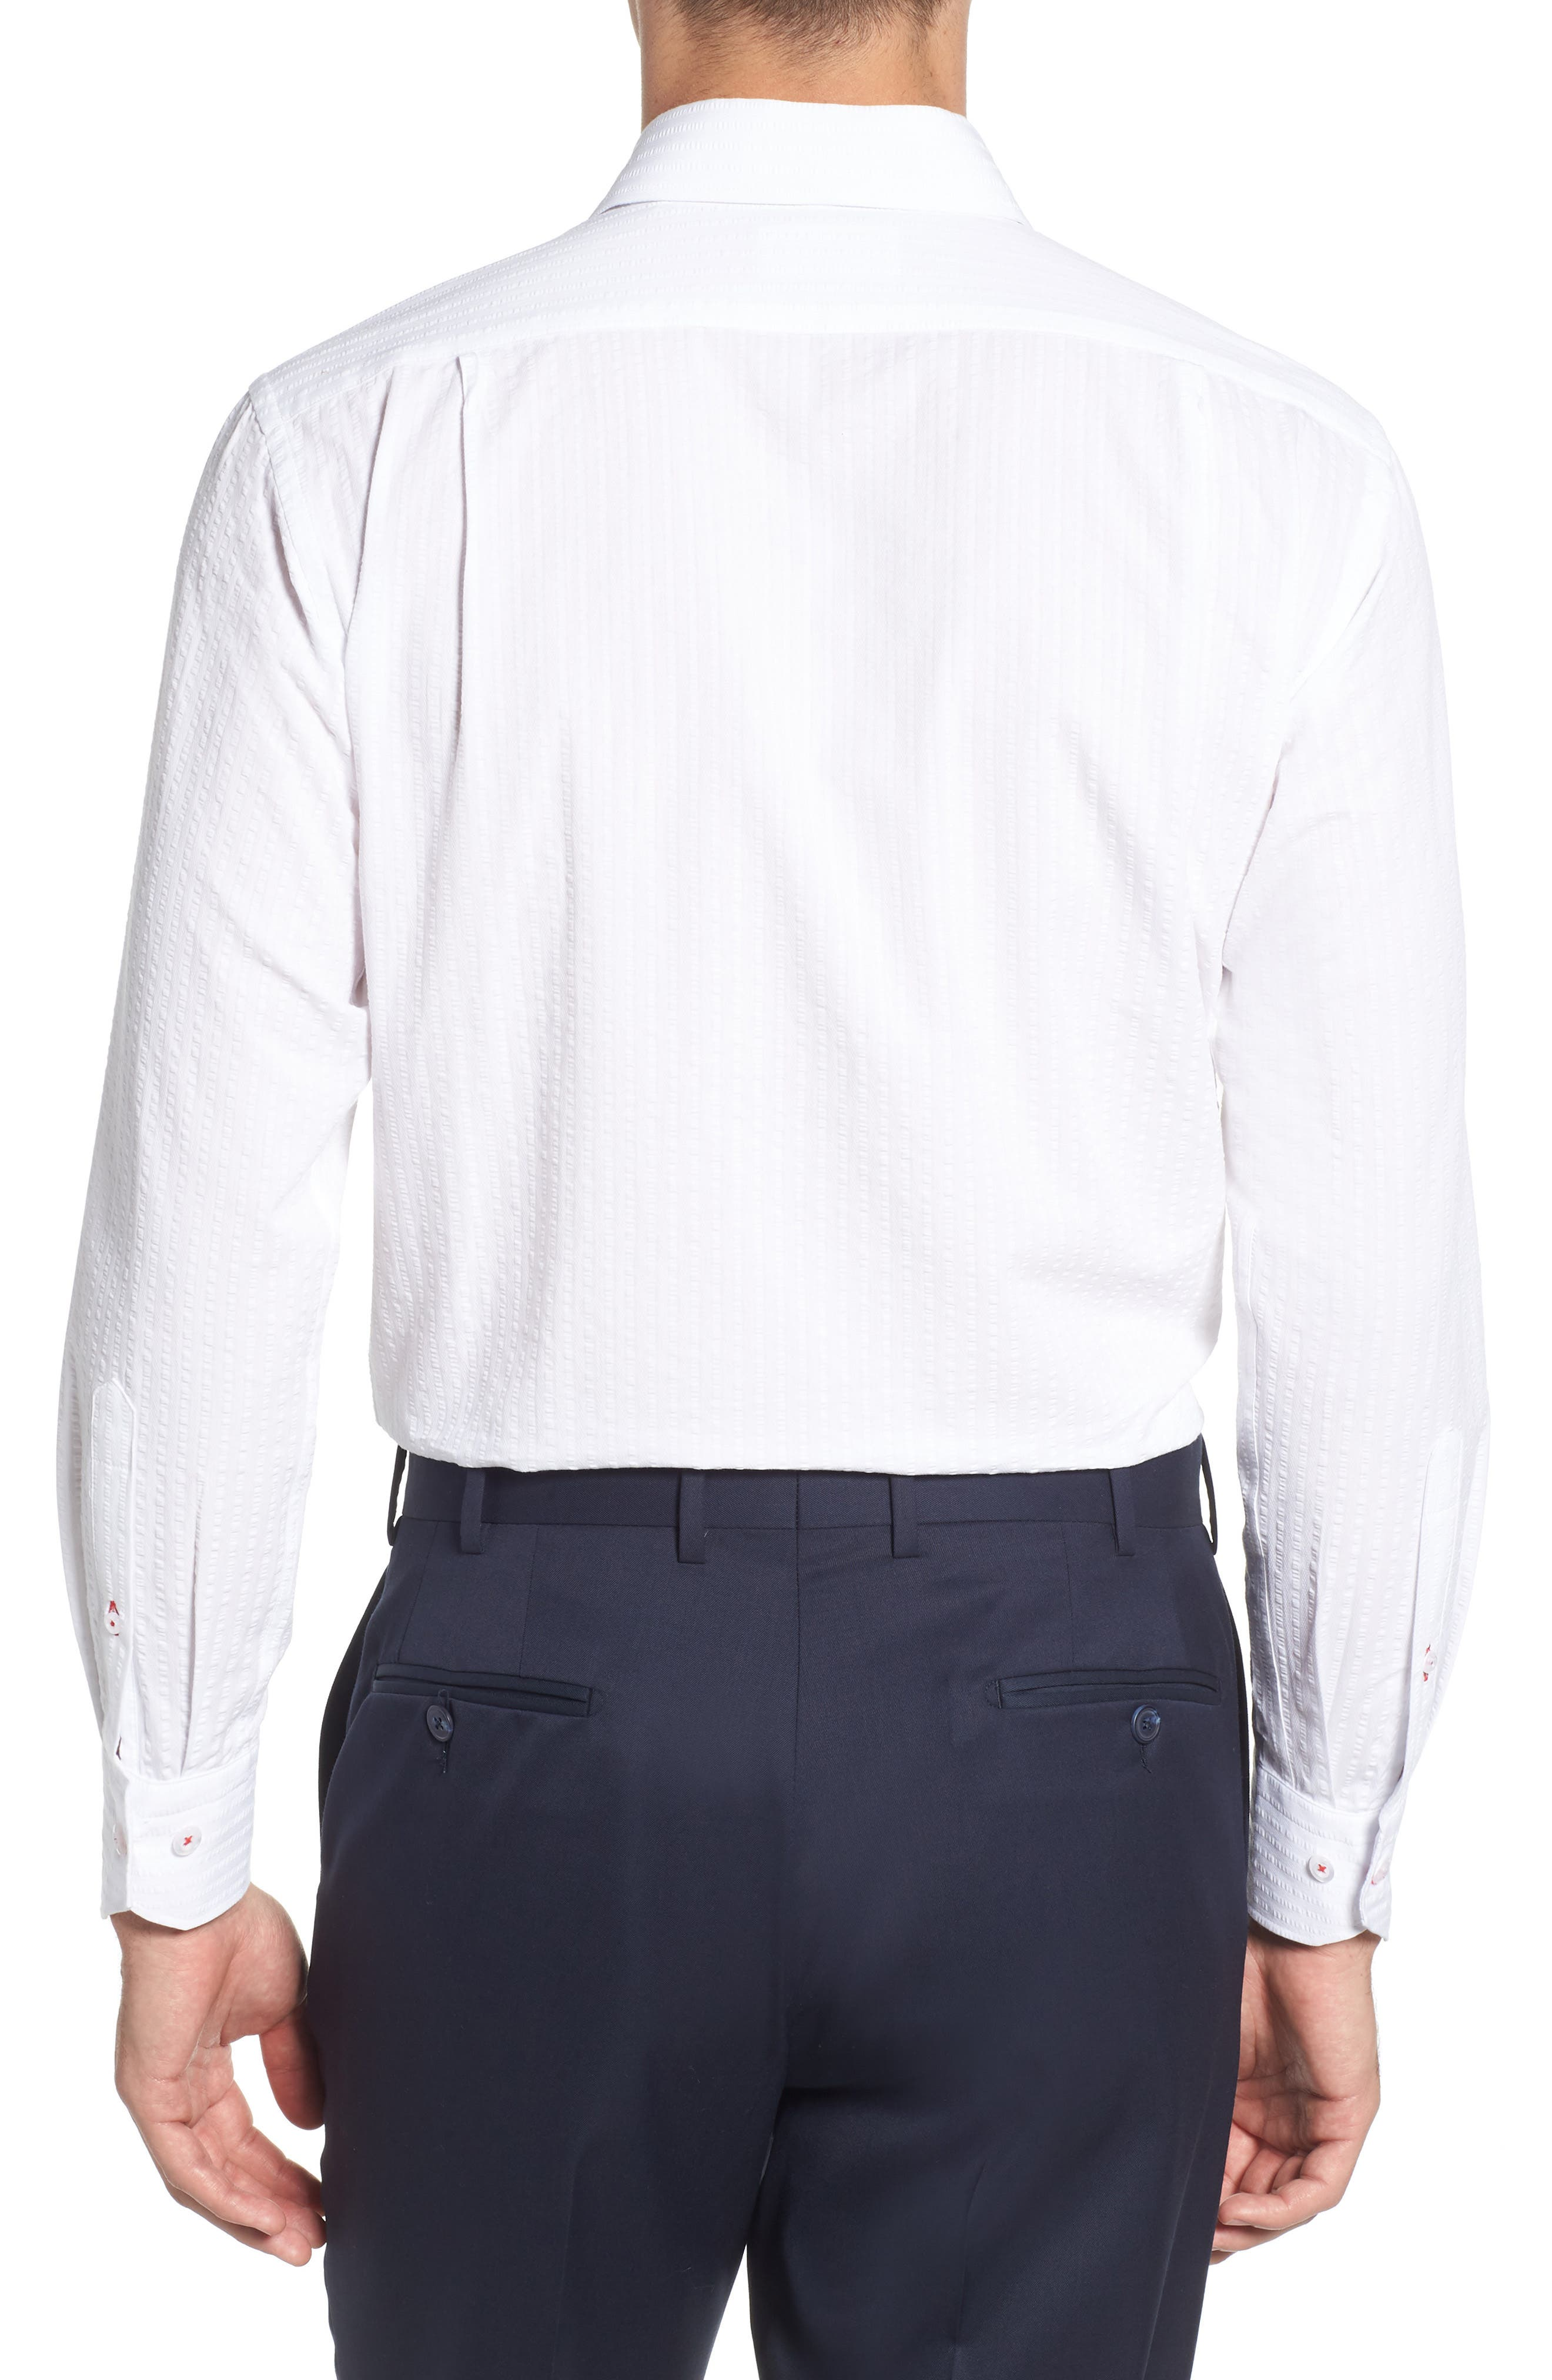 Trim Fit Seersucker Dress Shirt,                             Alternate thumbnail 3, color,                             White